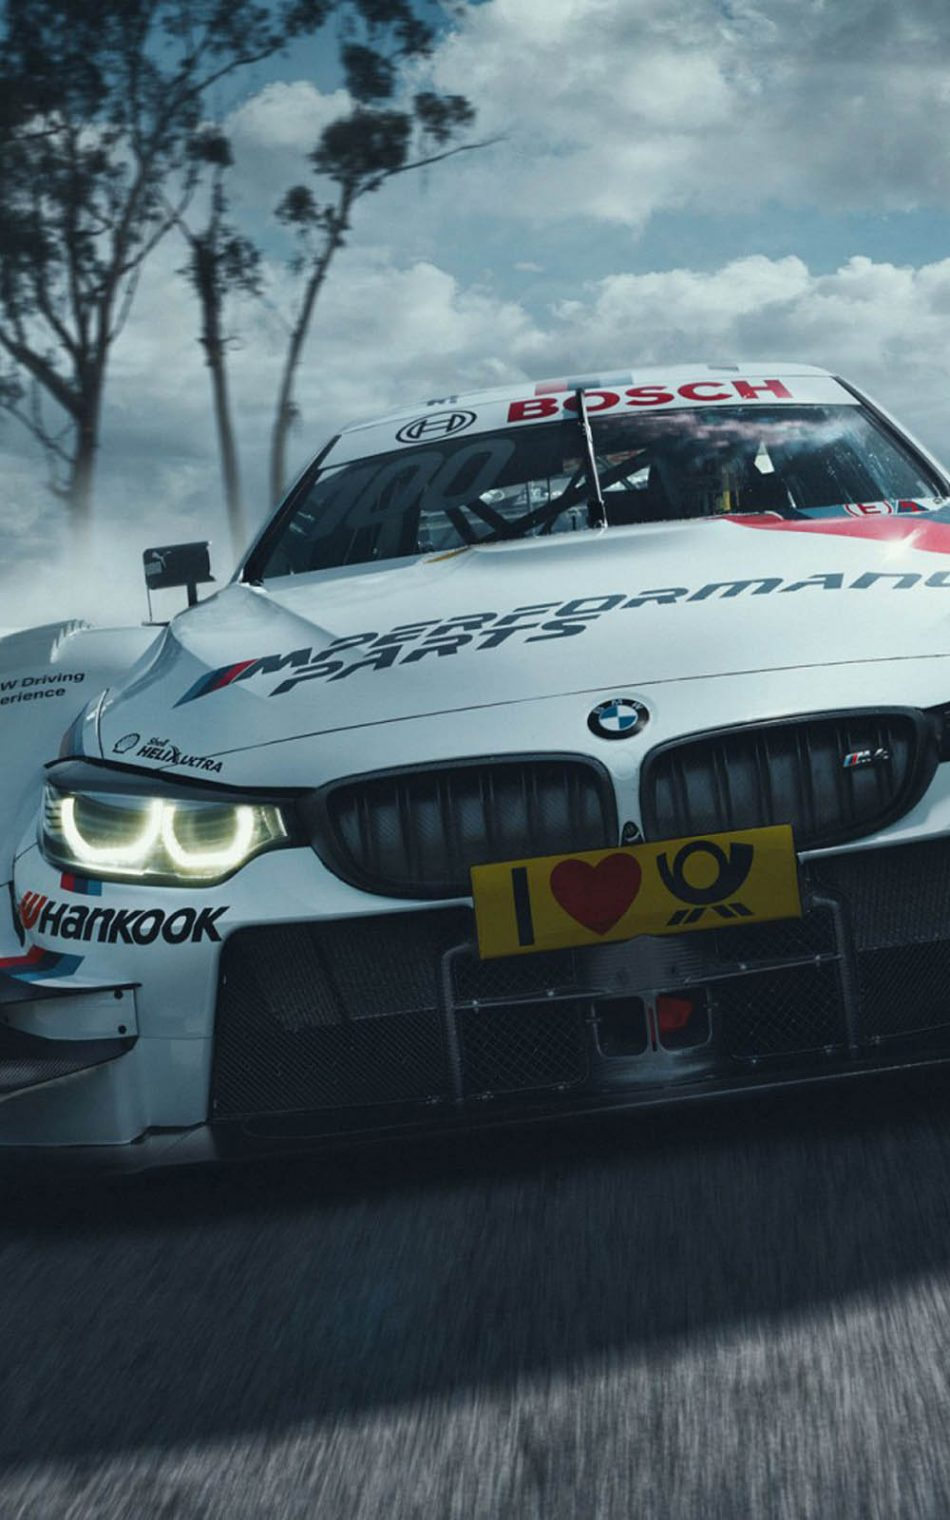 Download Bmw M4 Dtm In Action Free Pure 4k Ultra Hd Mobile Wallpaper